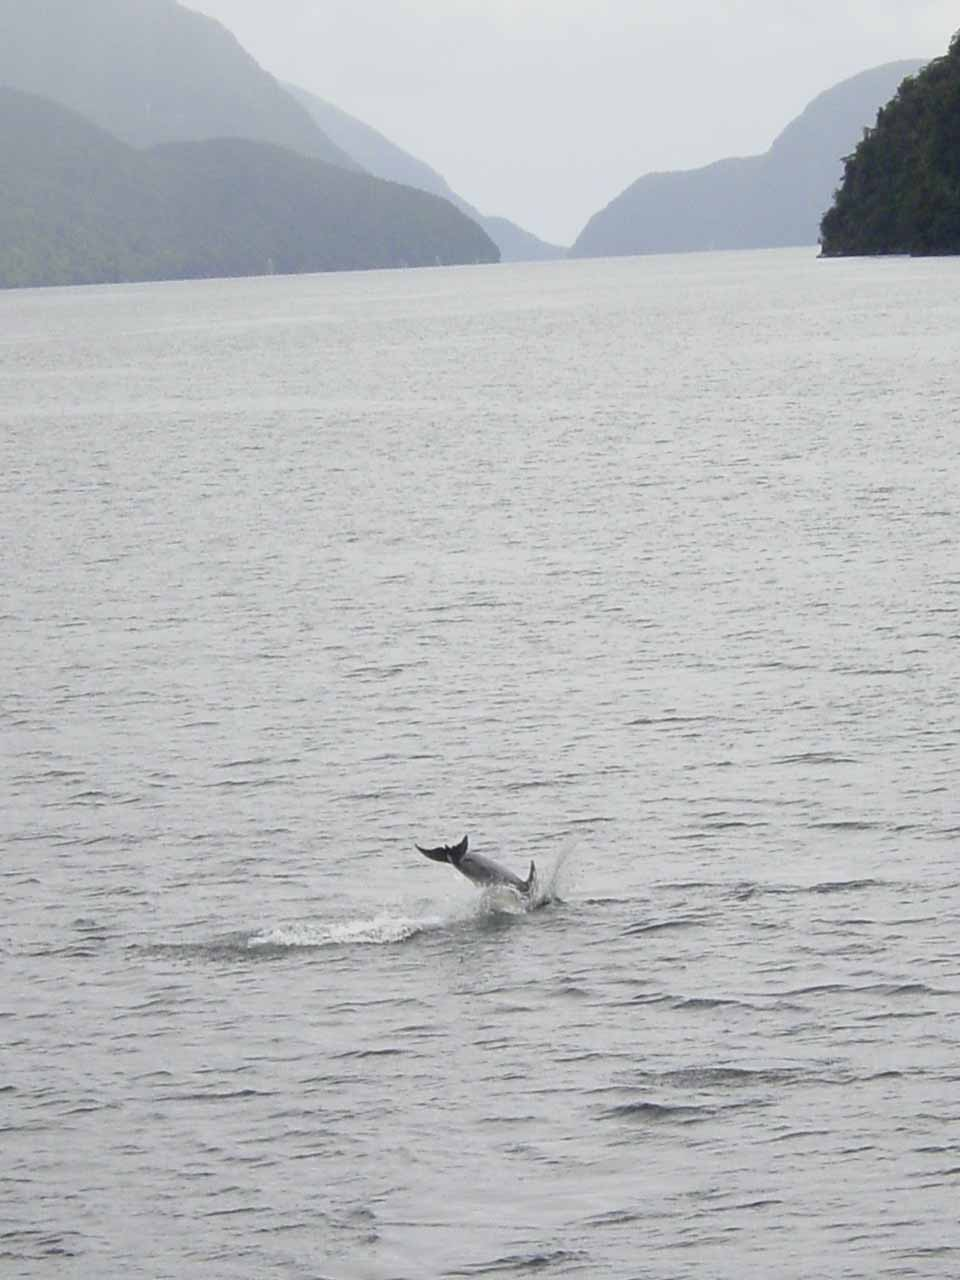 Alas, I didn't have a digital SLR camera back in November 2004 so this was the best I could do to capture a dusky dolphin doing a backflip in the Doubtful Sound